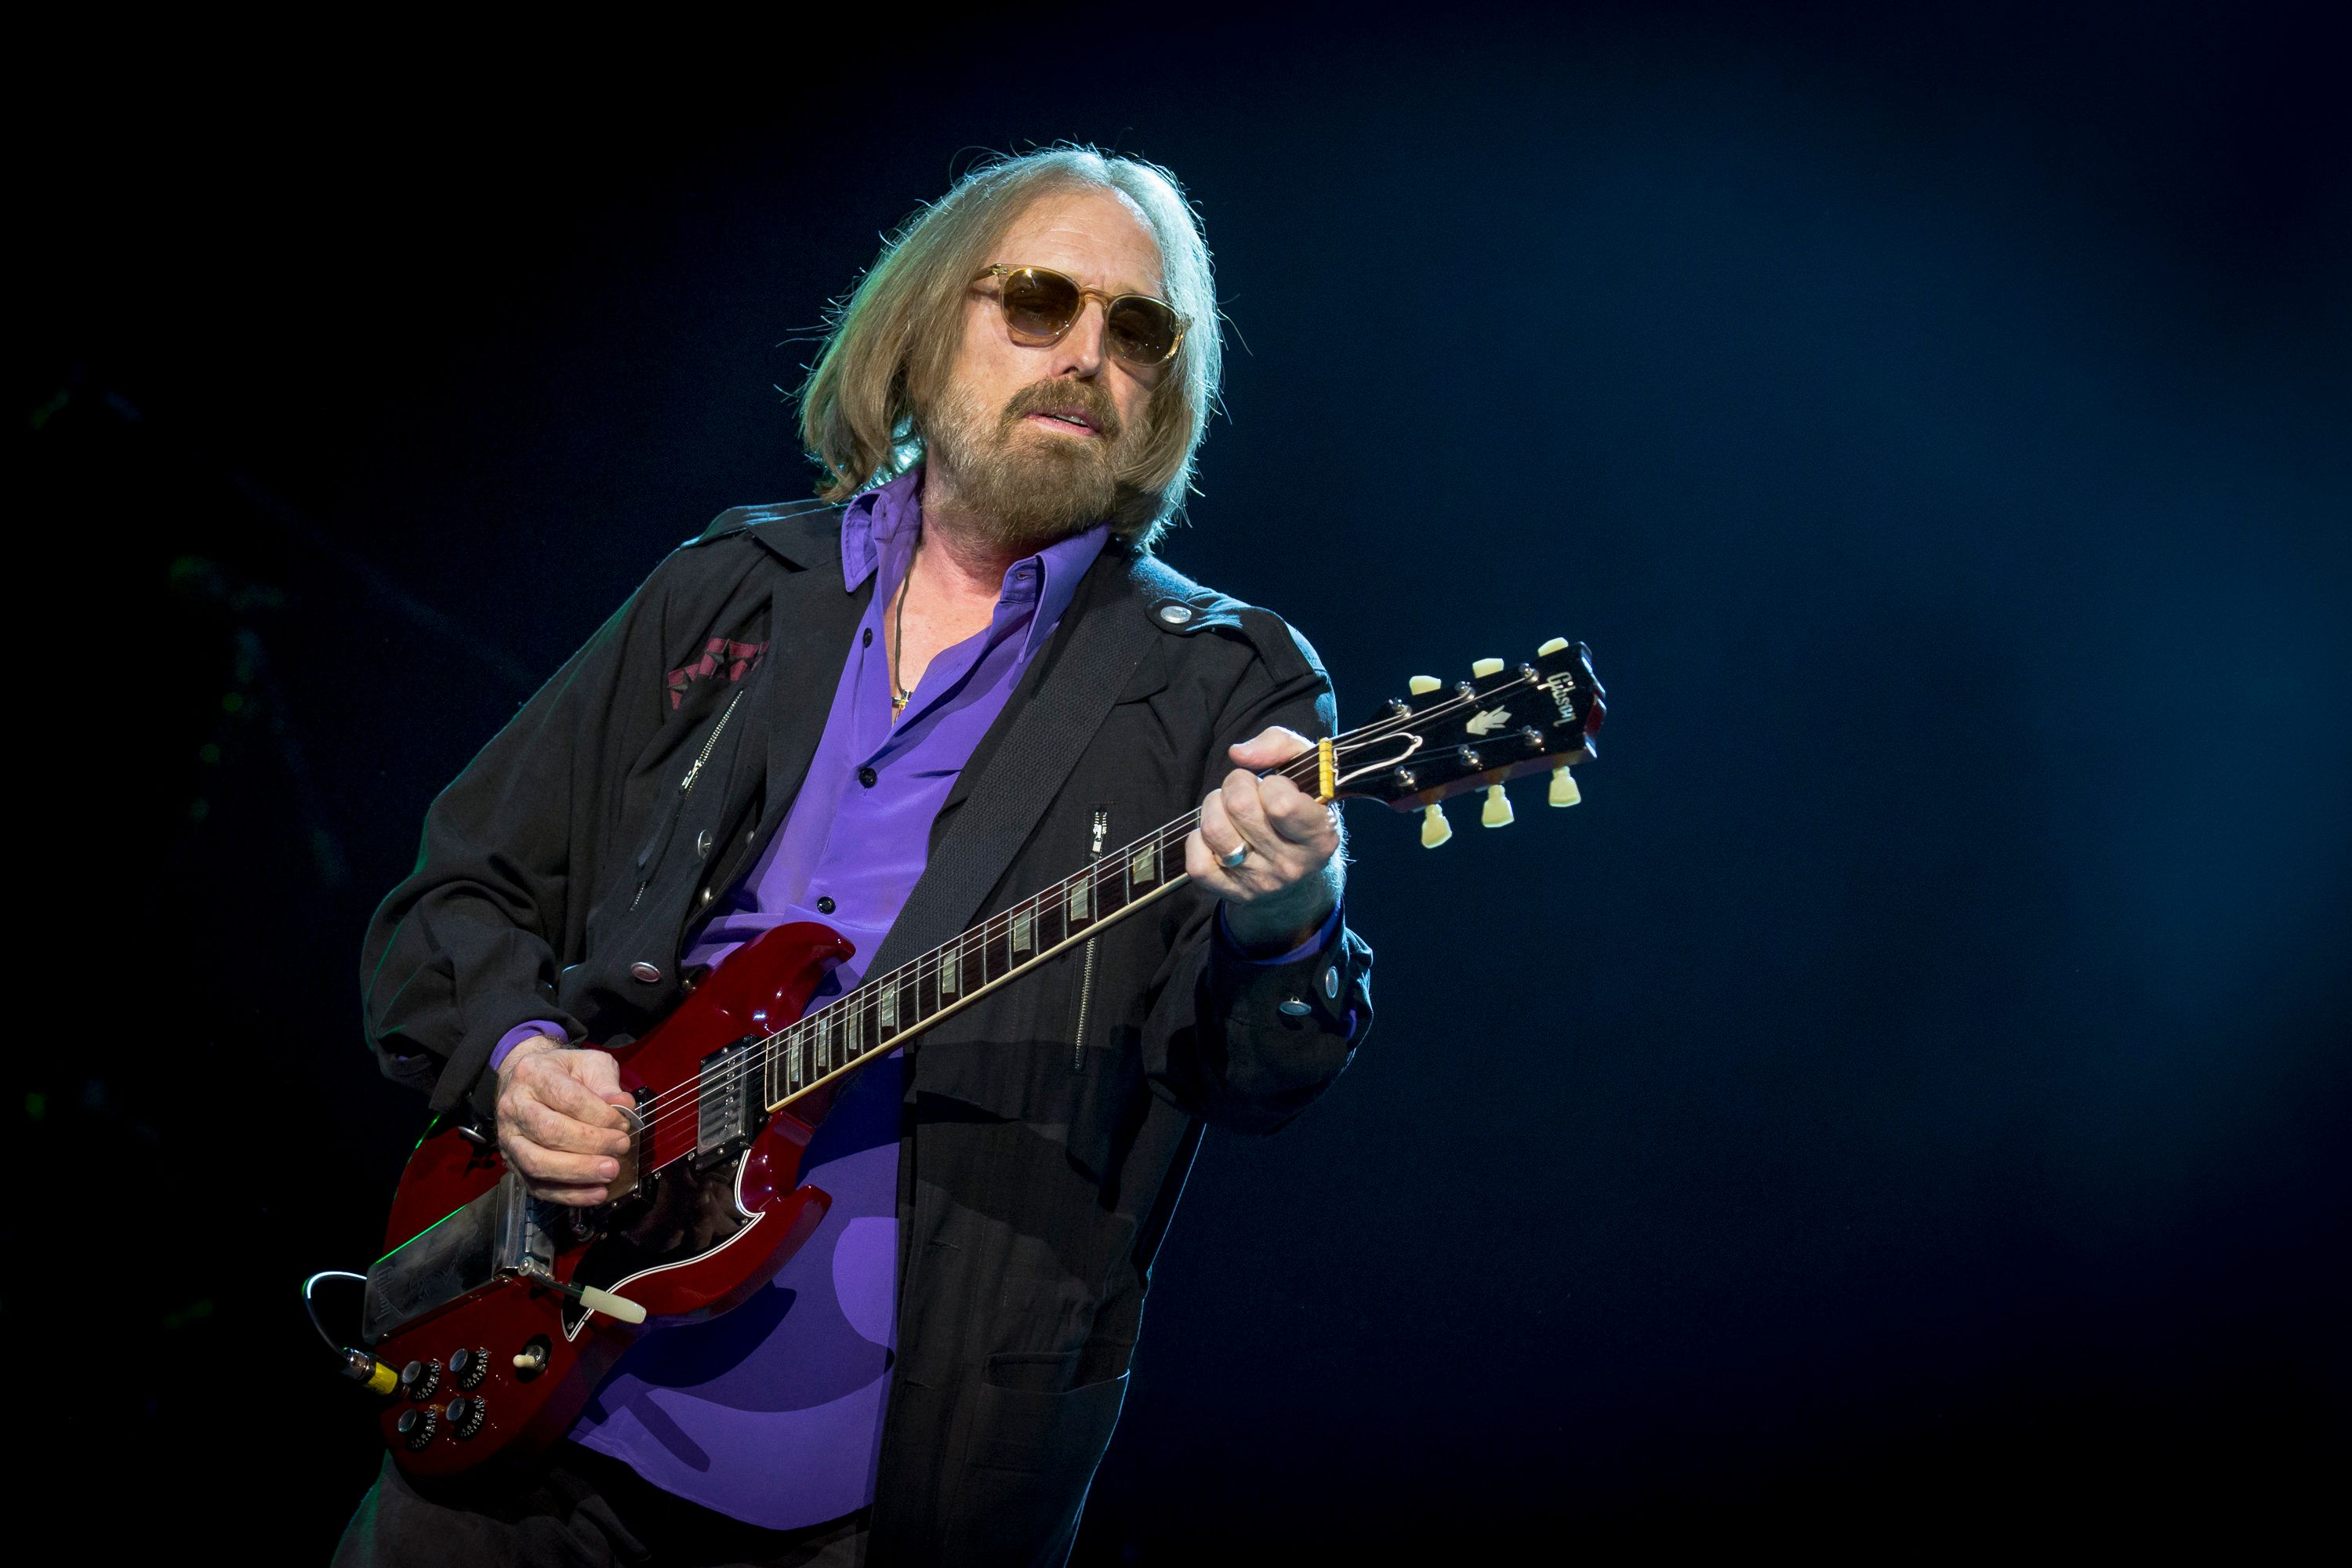 Rock Legend Tom Petty Dies at 66